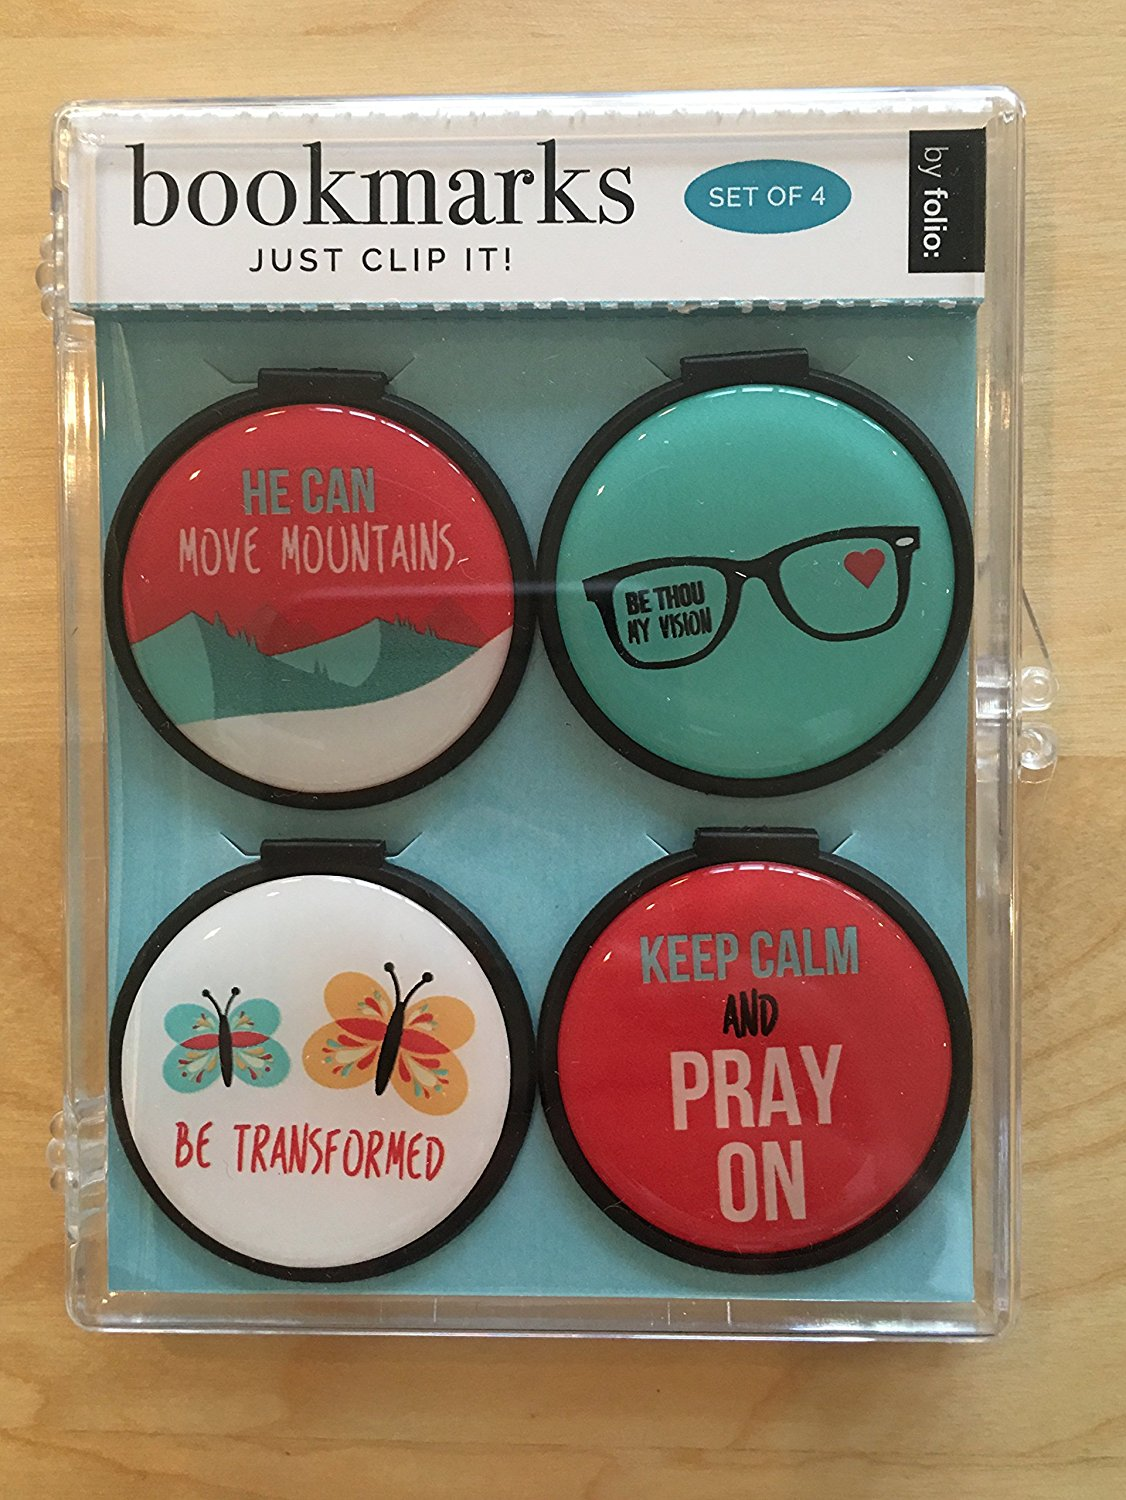 Just Clip it! Quote Bookmarks - (Set of 4 clip over the page markers) - HE CAN, Move MOUNTAINS, BE Transformed, KEEP CALM & Pray ON, BE THOU my ViSion